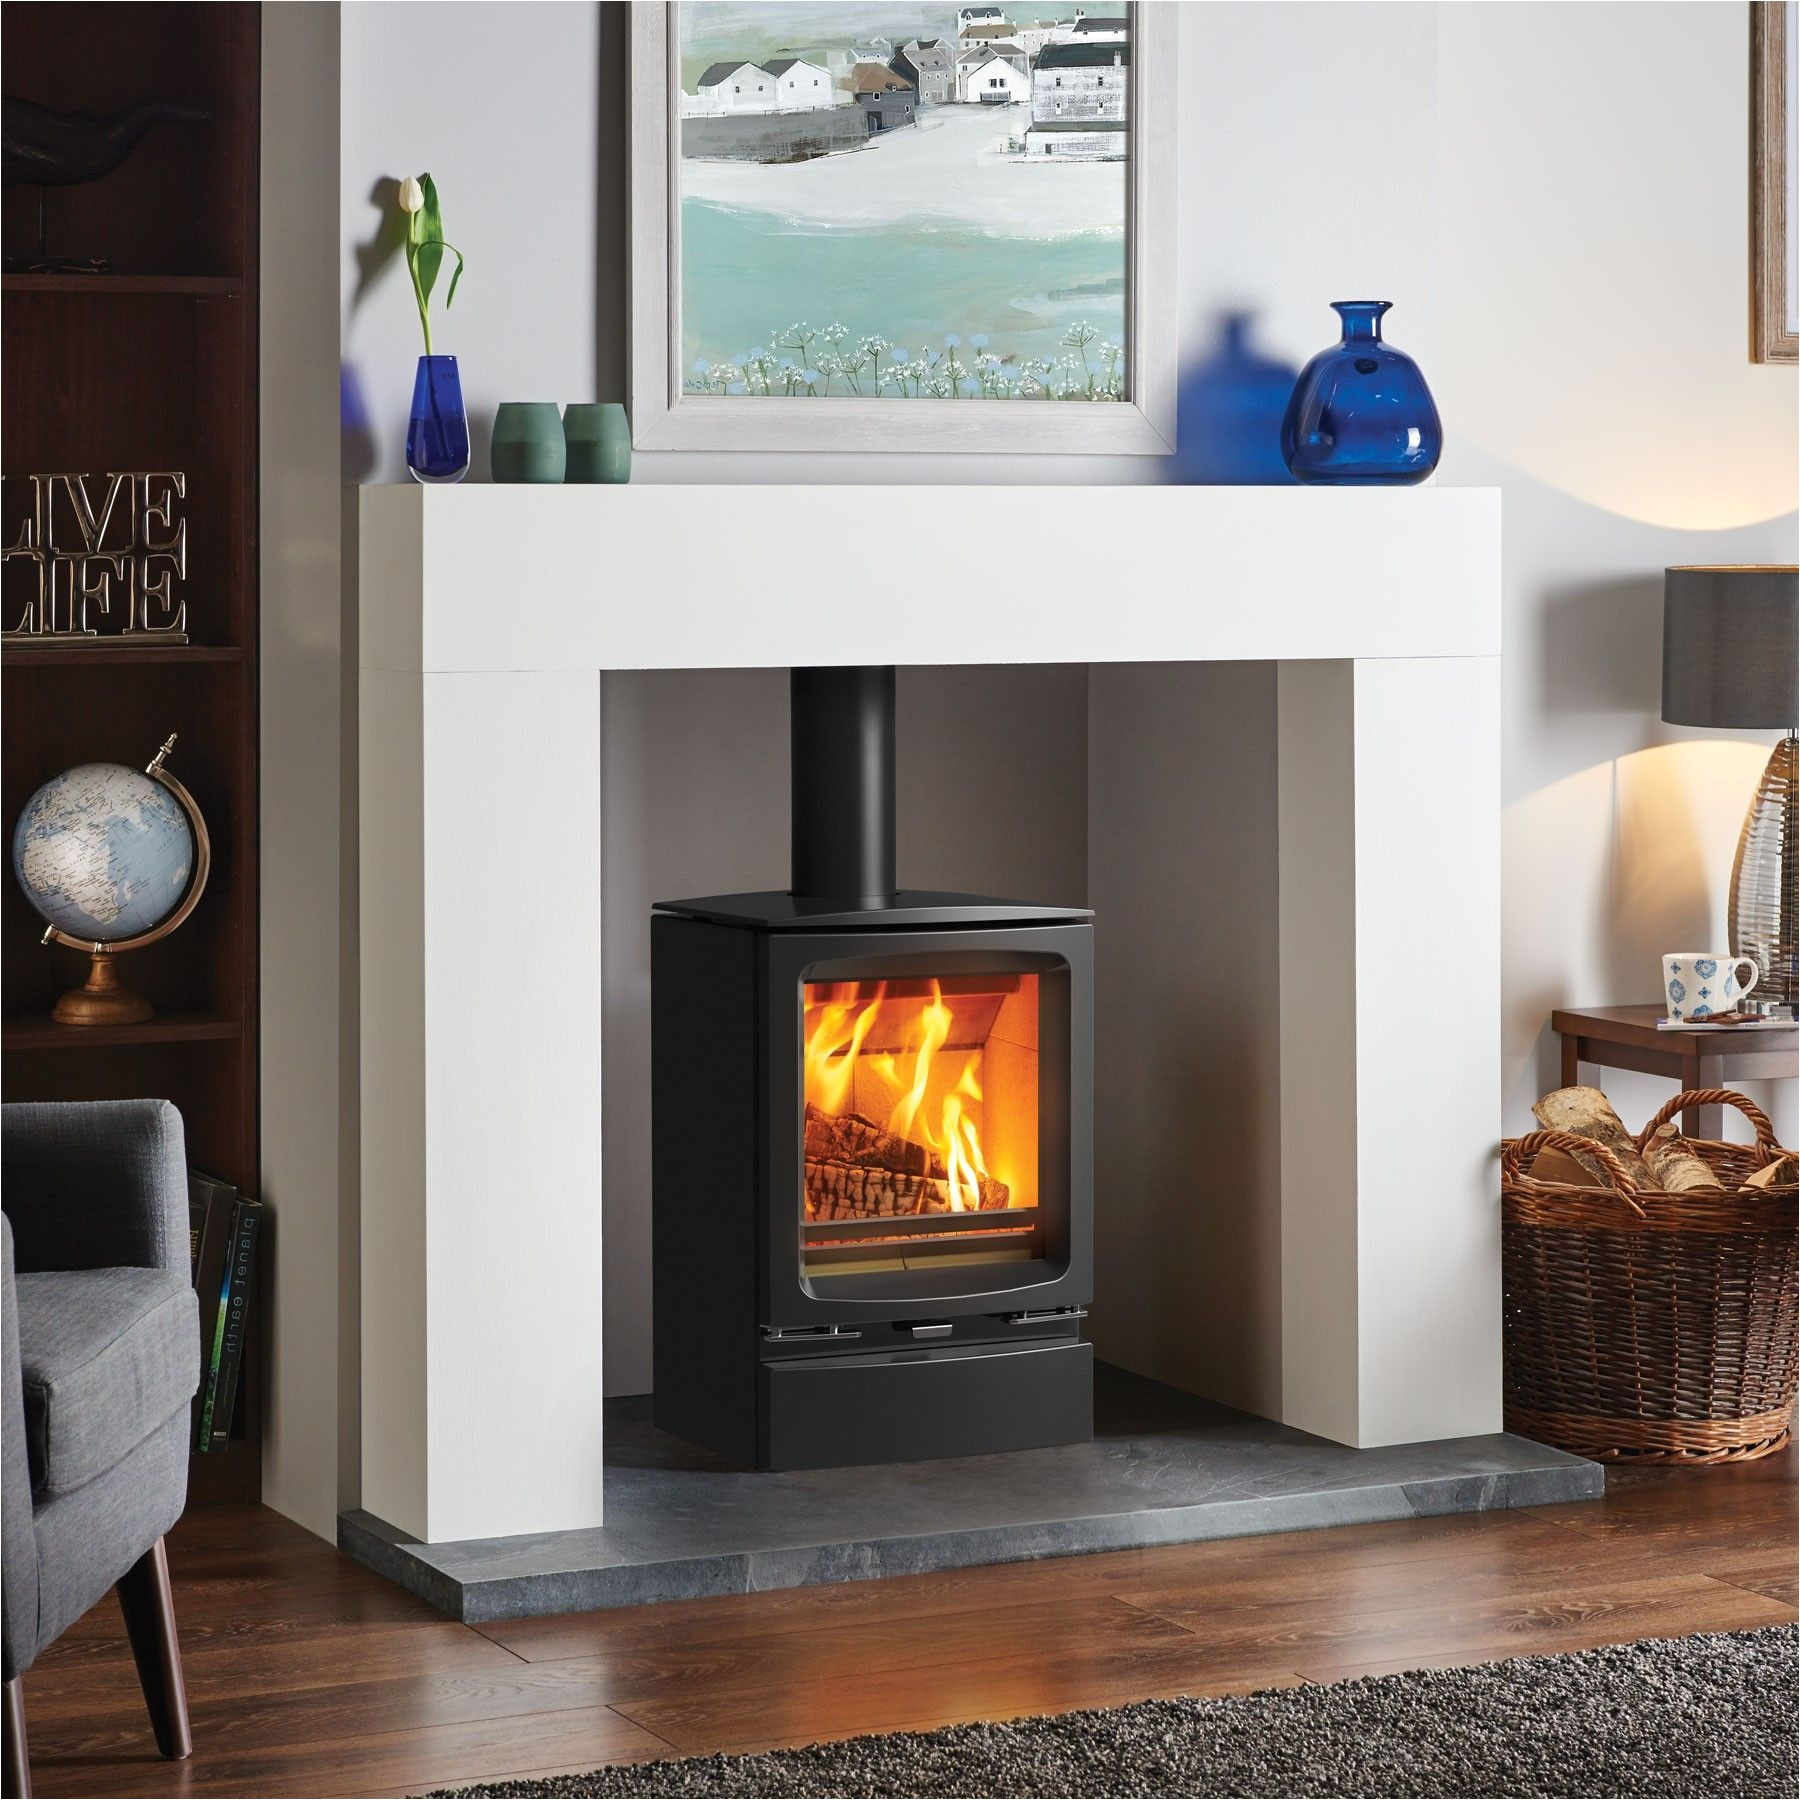 gas fireplace inserts stores near me modern fire surrounds for wood burners google search fireplac of gas fireplace inserts stores near me